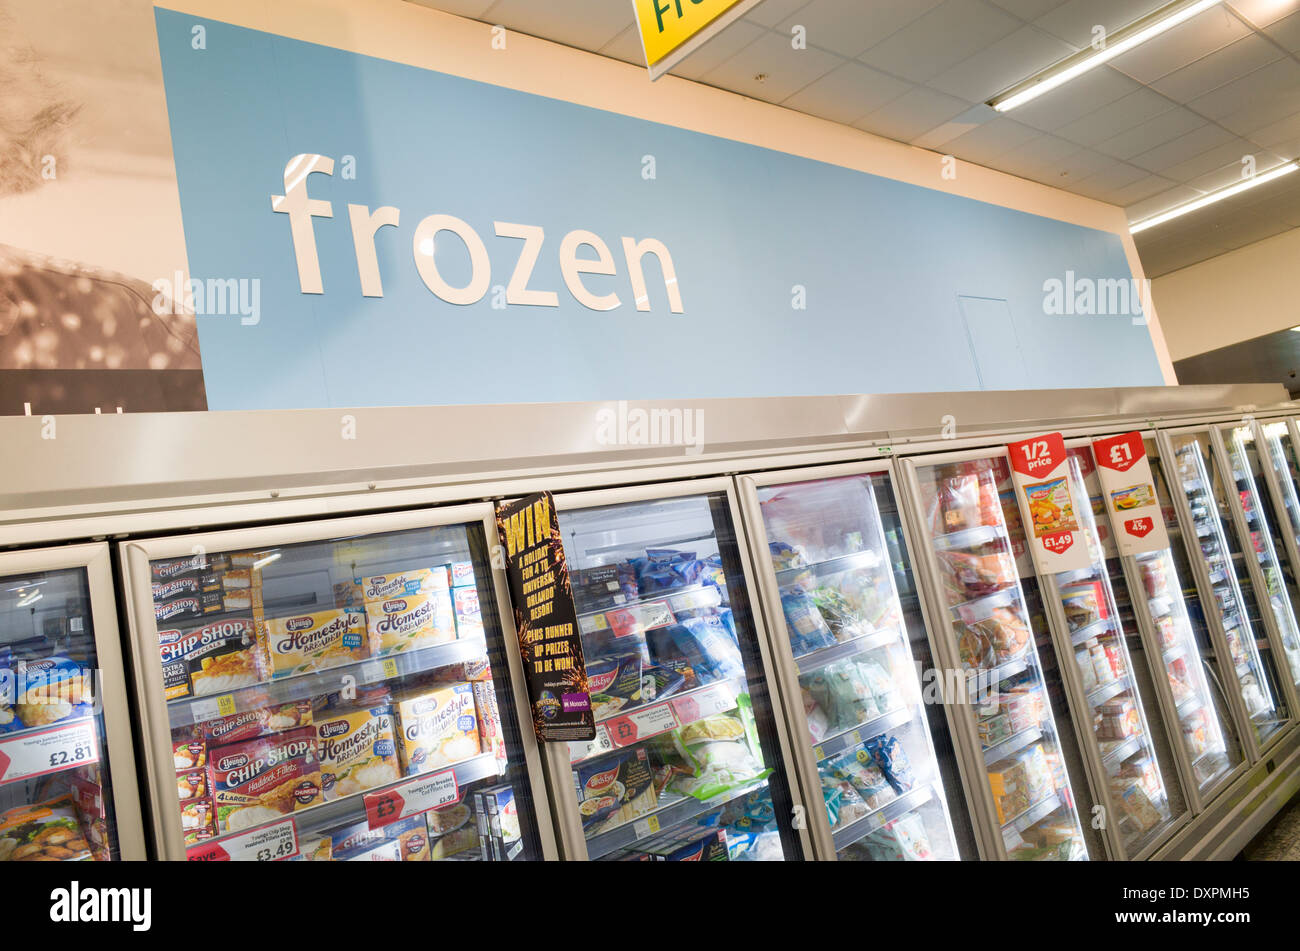 Freezer Section Stock Photos & Freezer Section Stock Images - Alamy